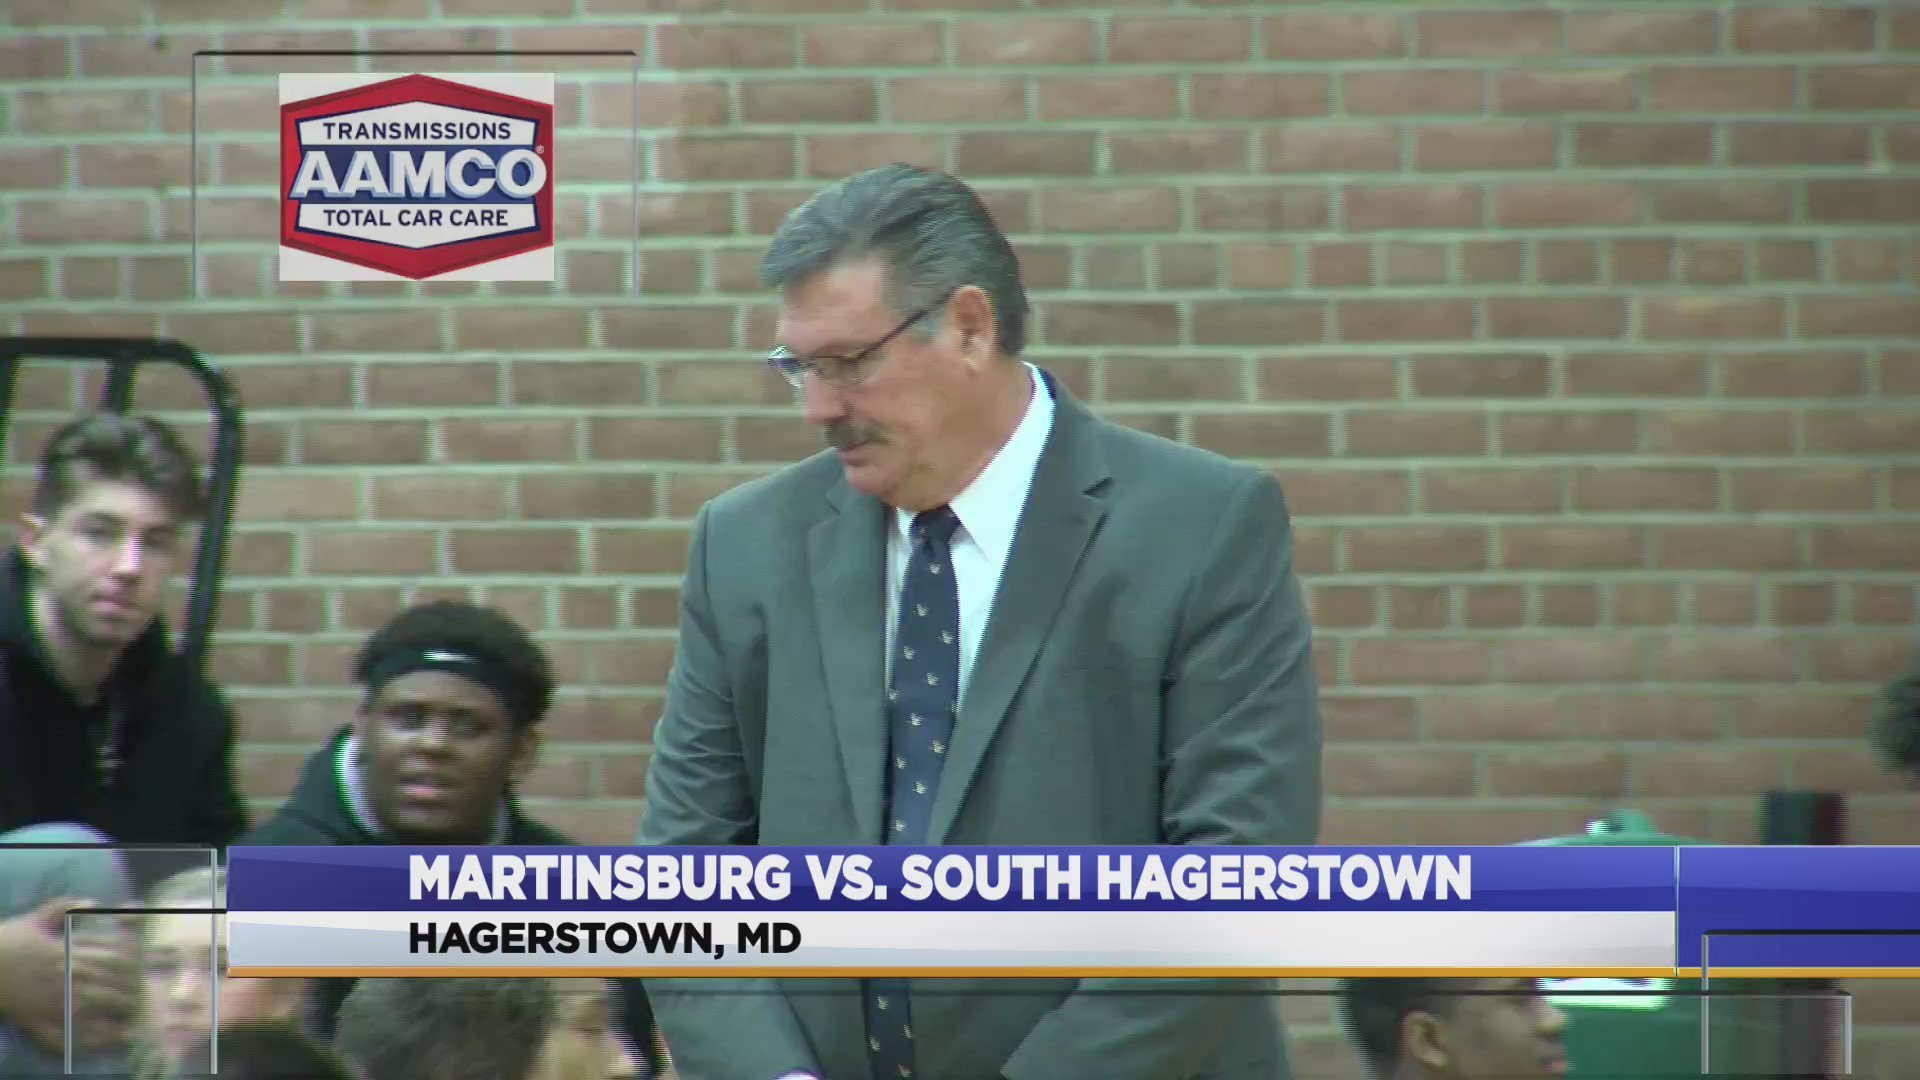 Martinsburg_vs__South_Hagerstown_0_20190116030627